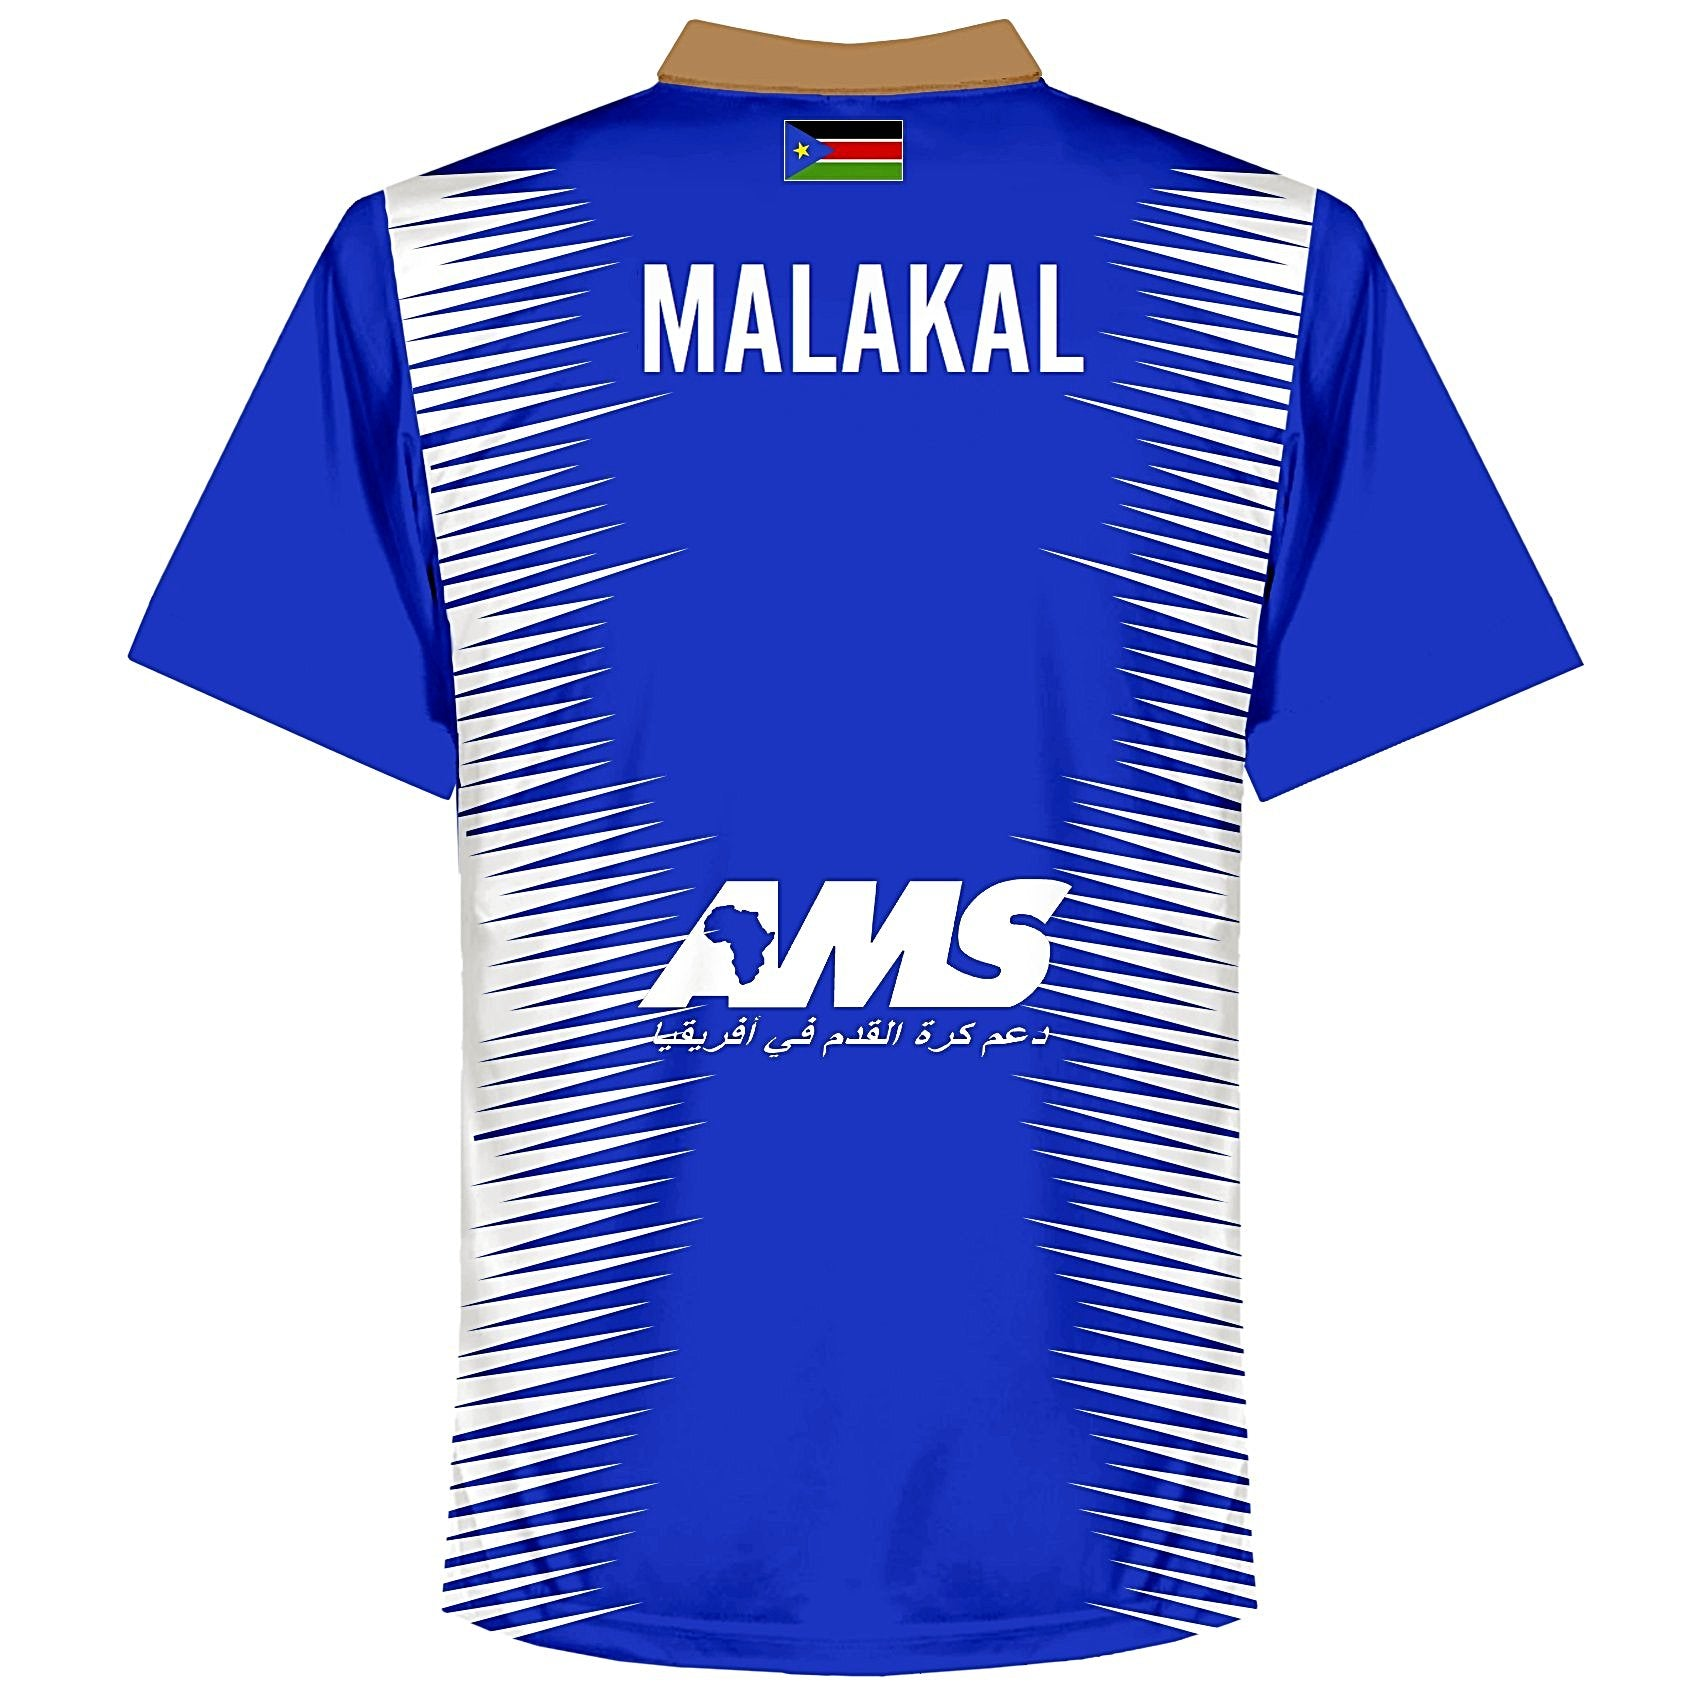 Malakal National Unity Day Shirt